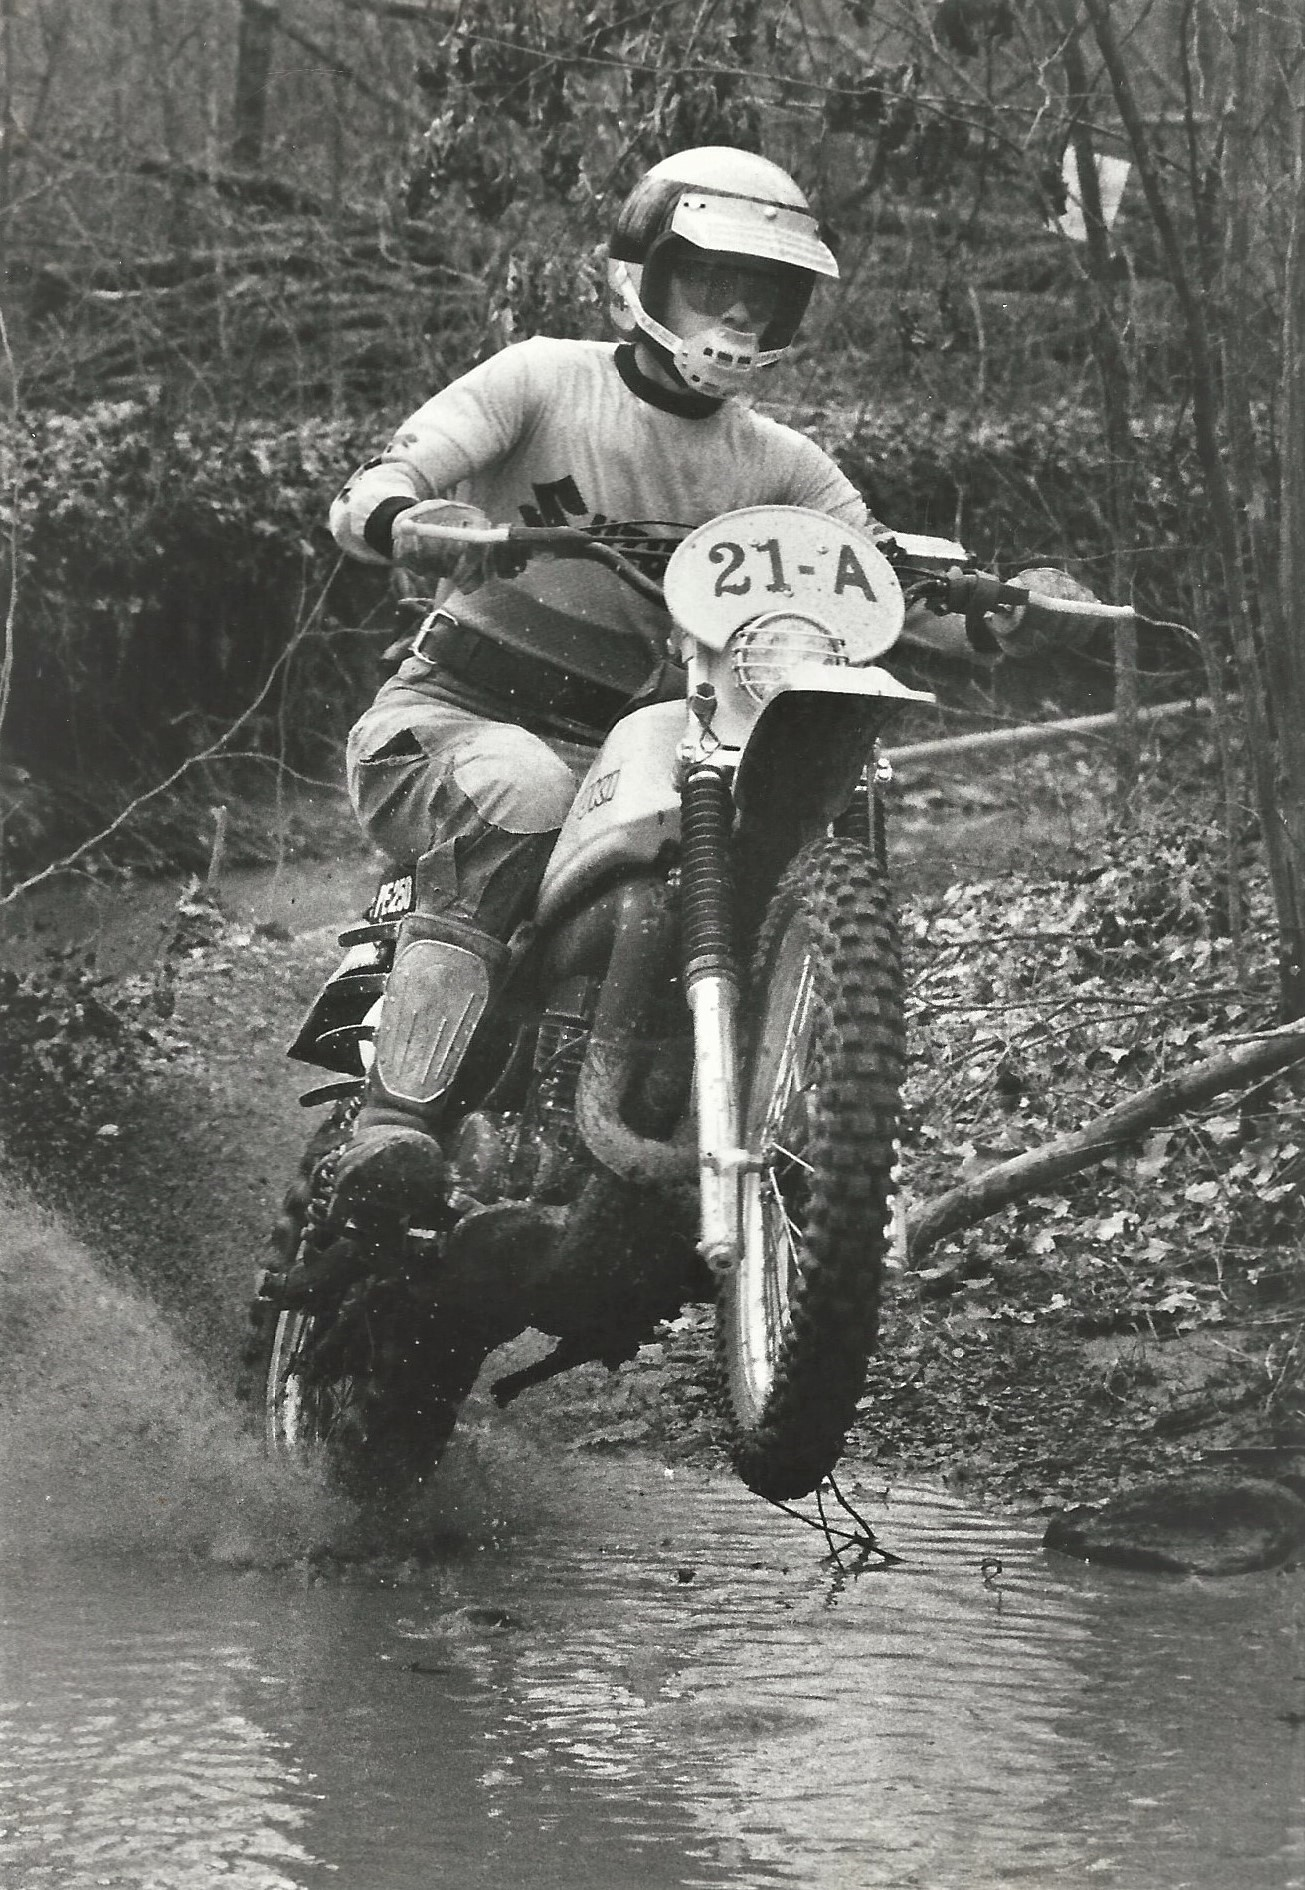 Yellowbanks Enduro in 1979 where Chris had a perfect score of 0 in the old time keeper format.